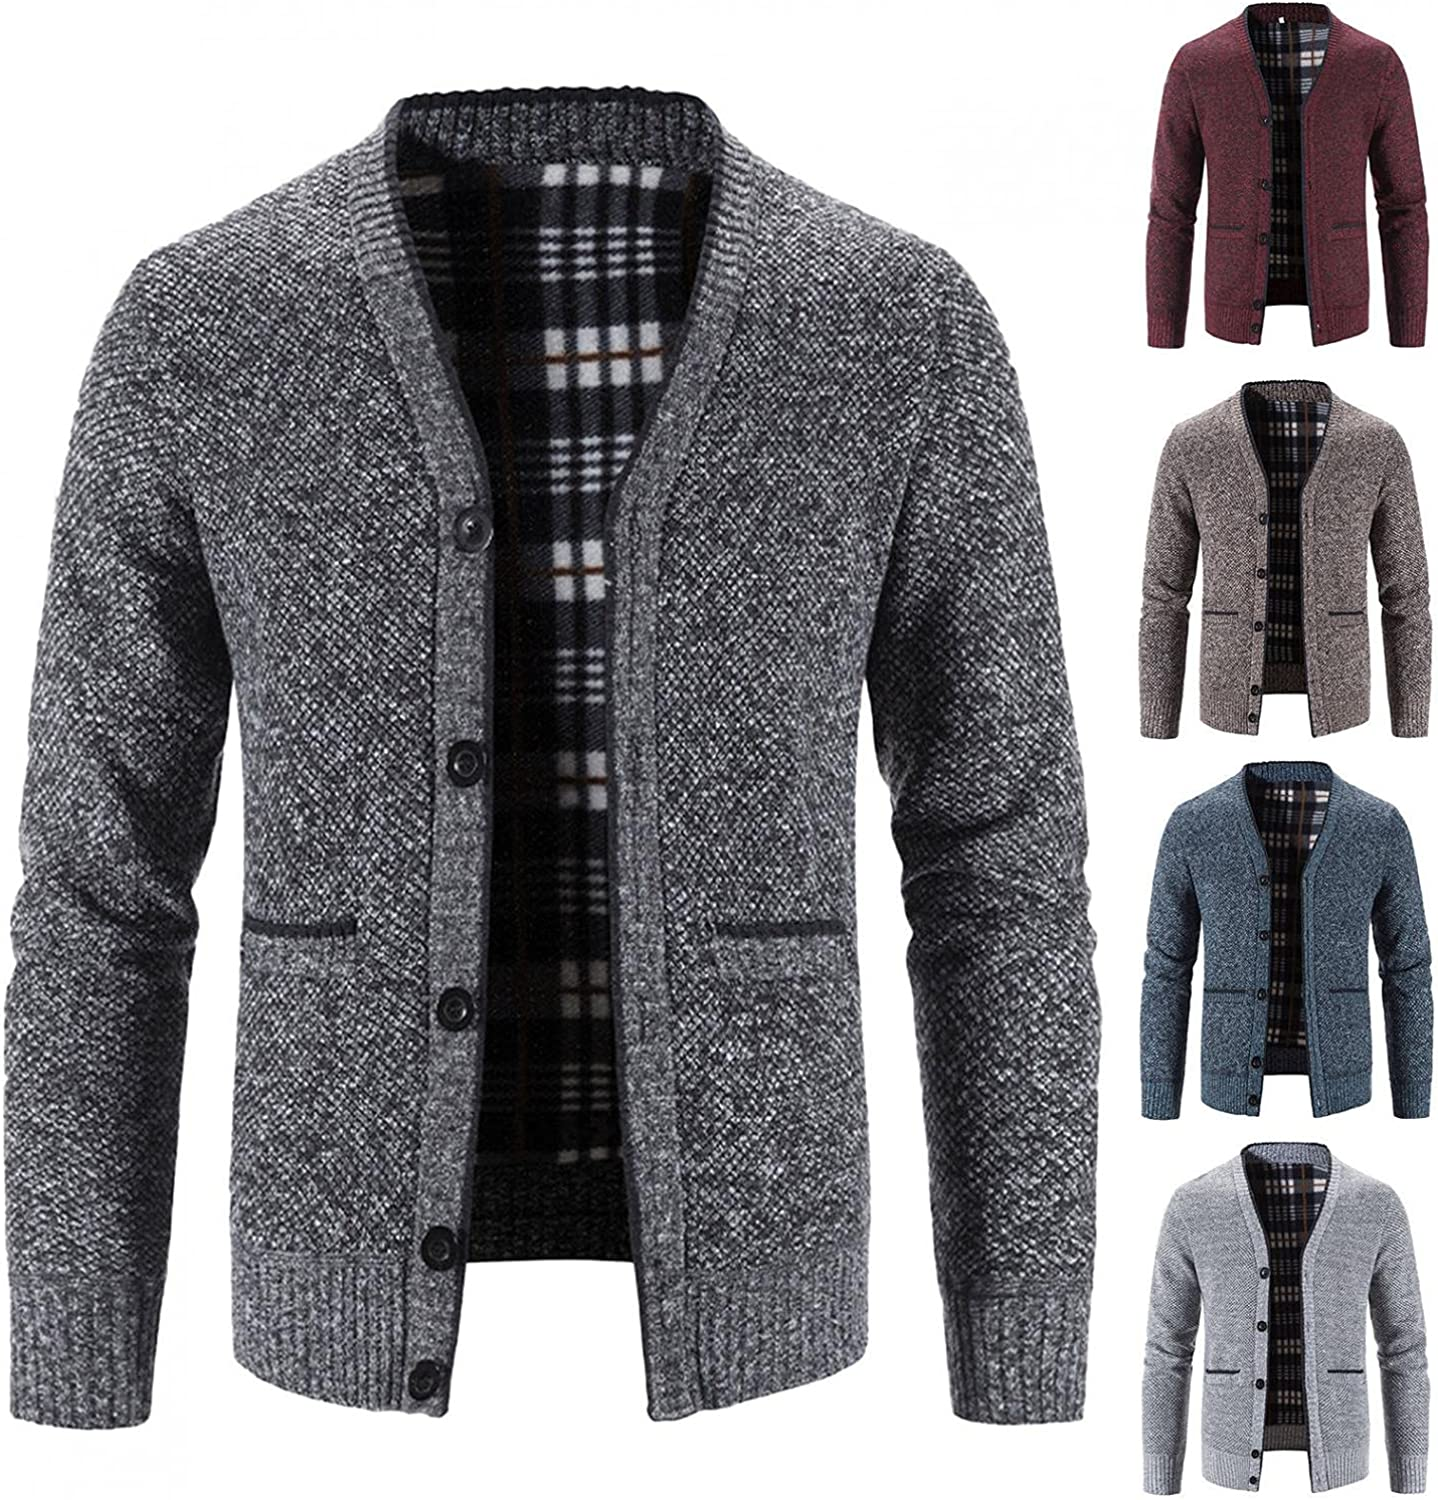 Men's Autumn And Winter Acrylic Solid Color Button Pocket V-neck Long Sleeve Cardigan Jacket Coat